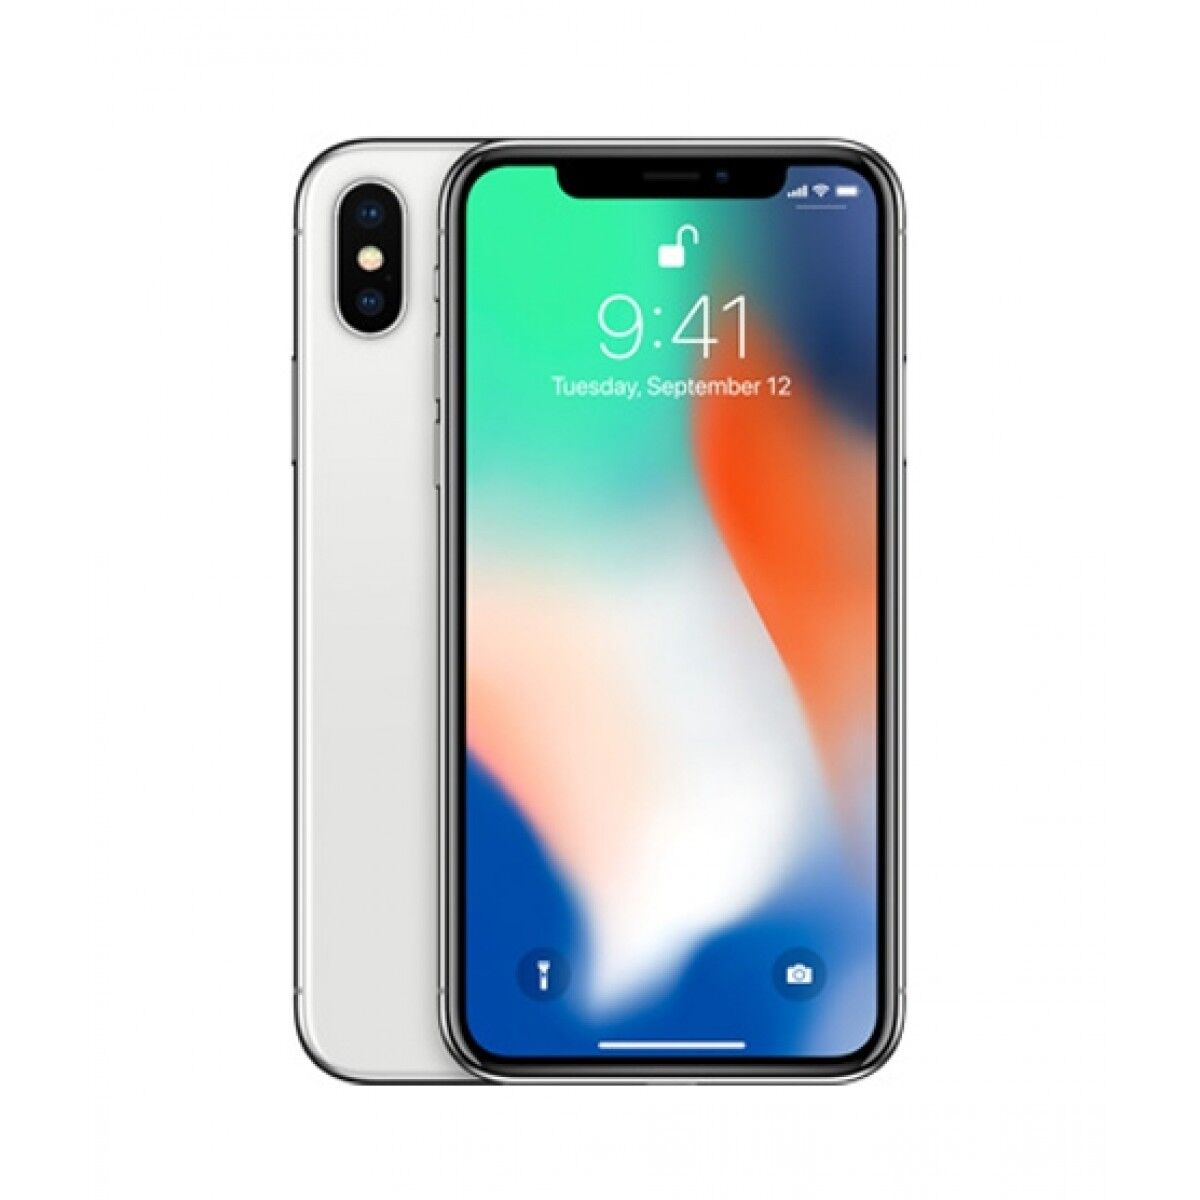 Apple iPhone X 64GB Silver With FaceTime